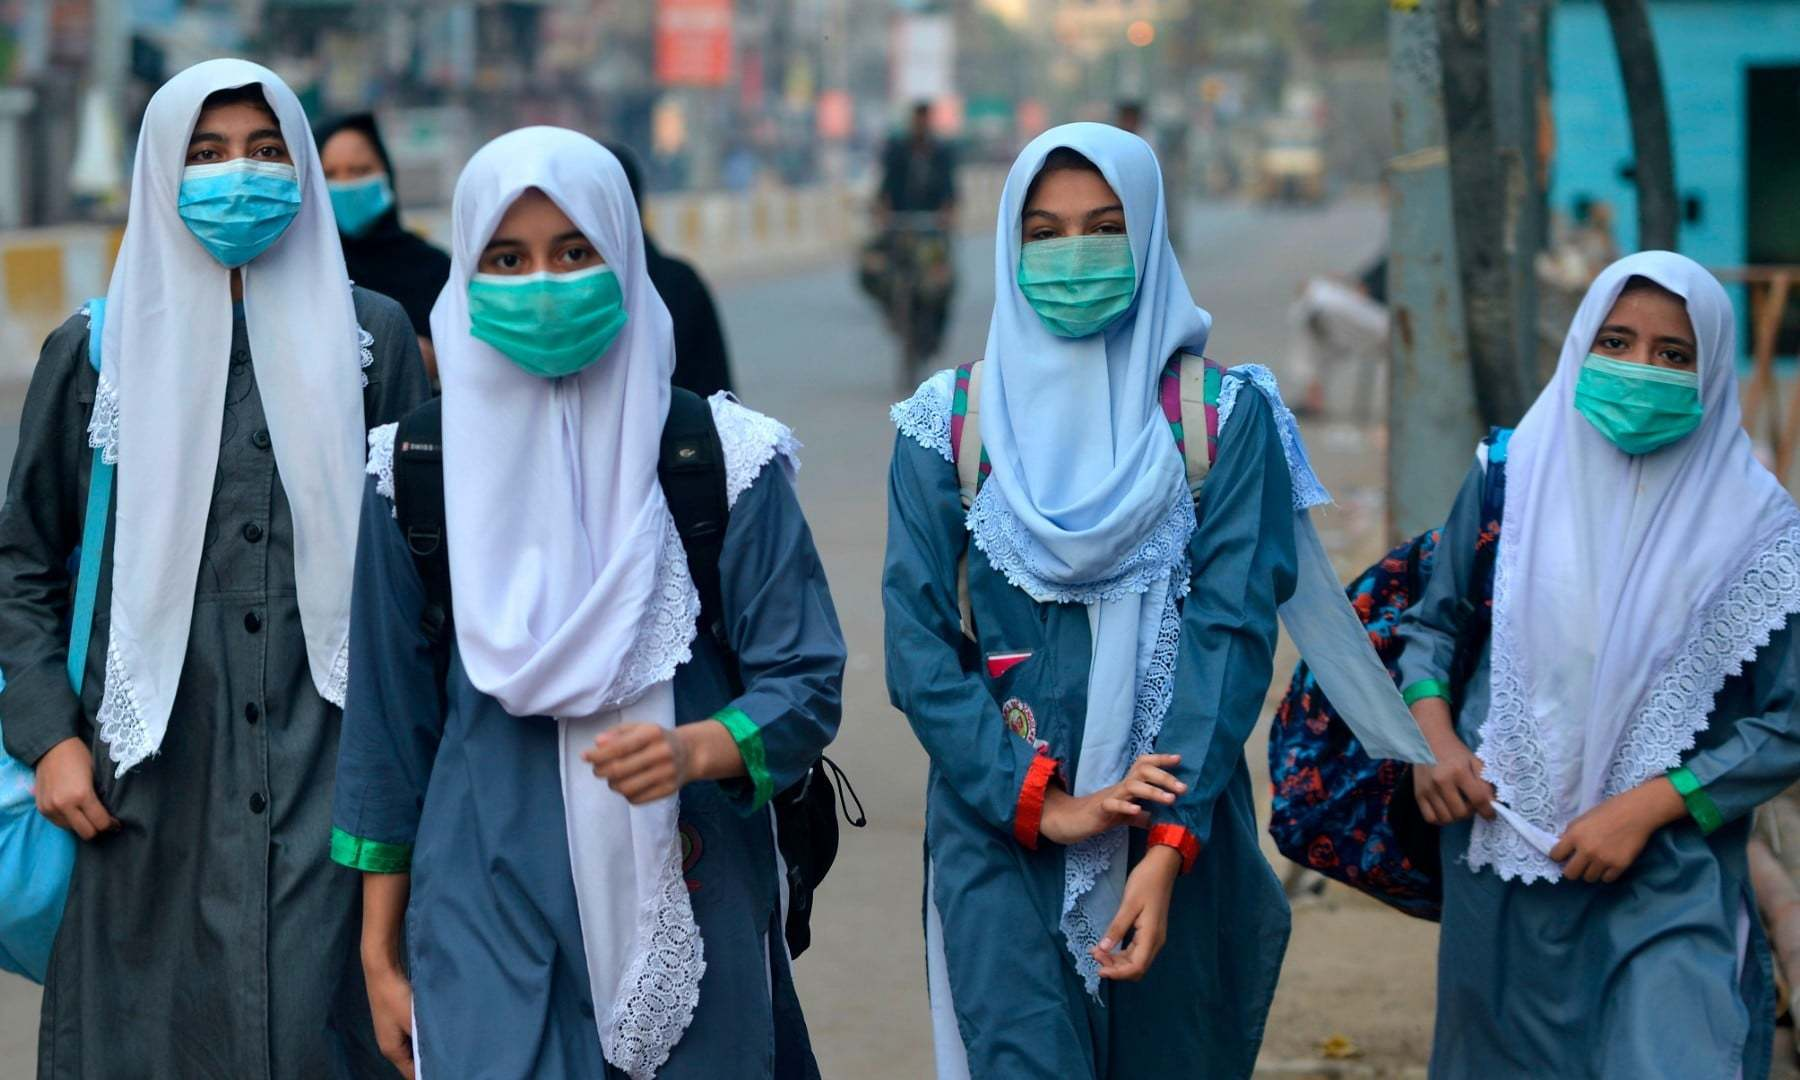 Students wearing face masks walk through a street to their school in Karachi on September 15. — AFP